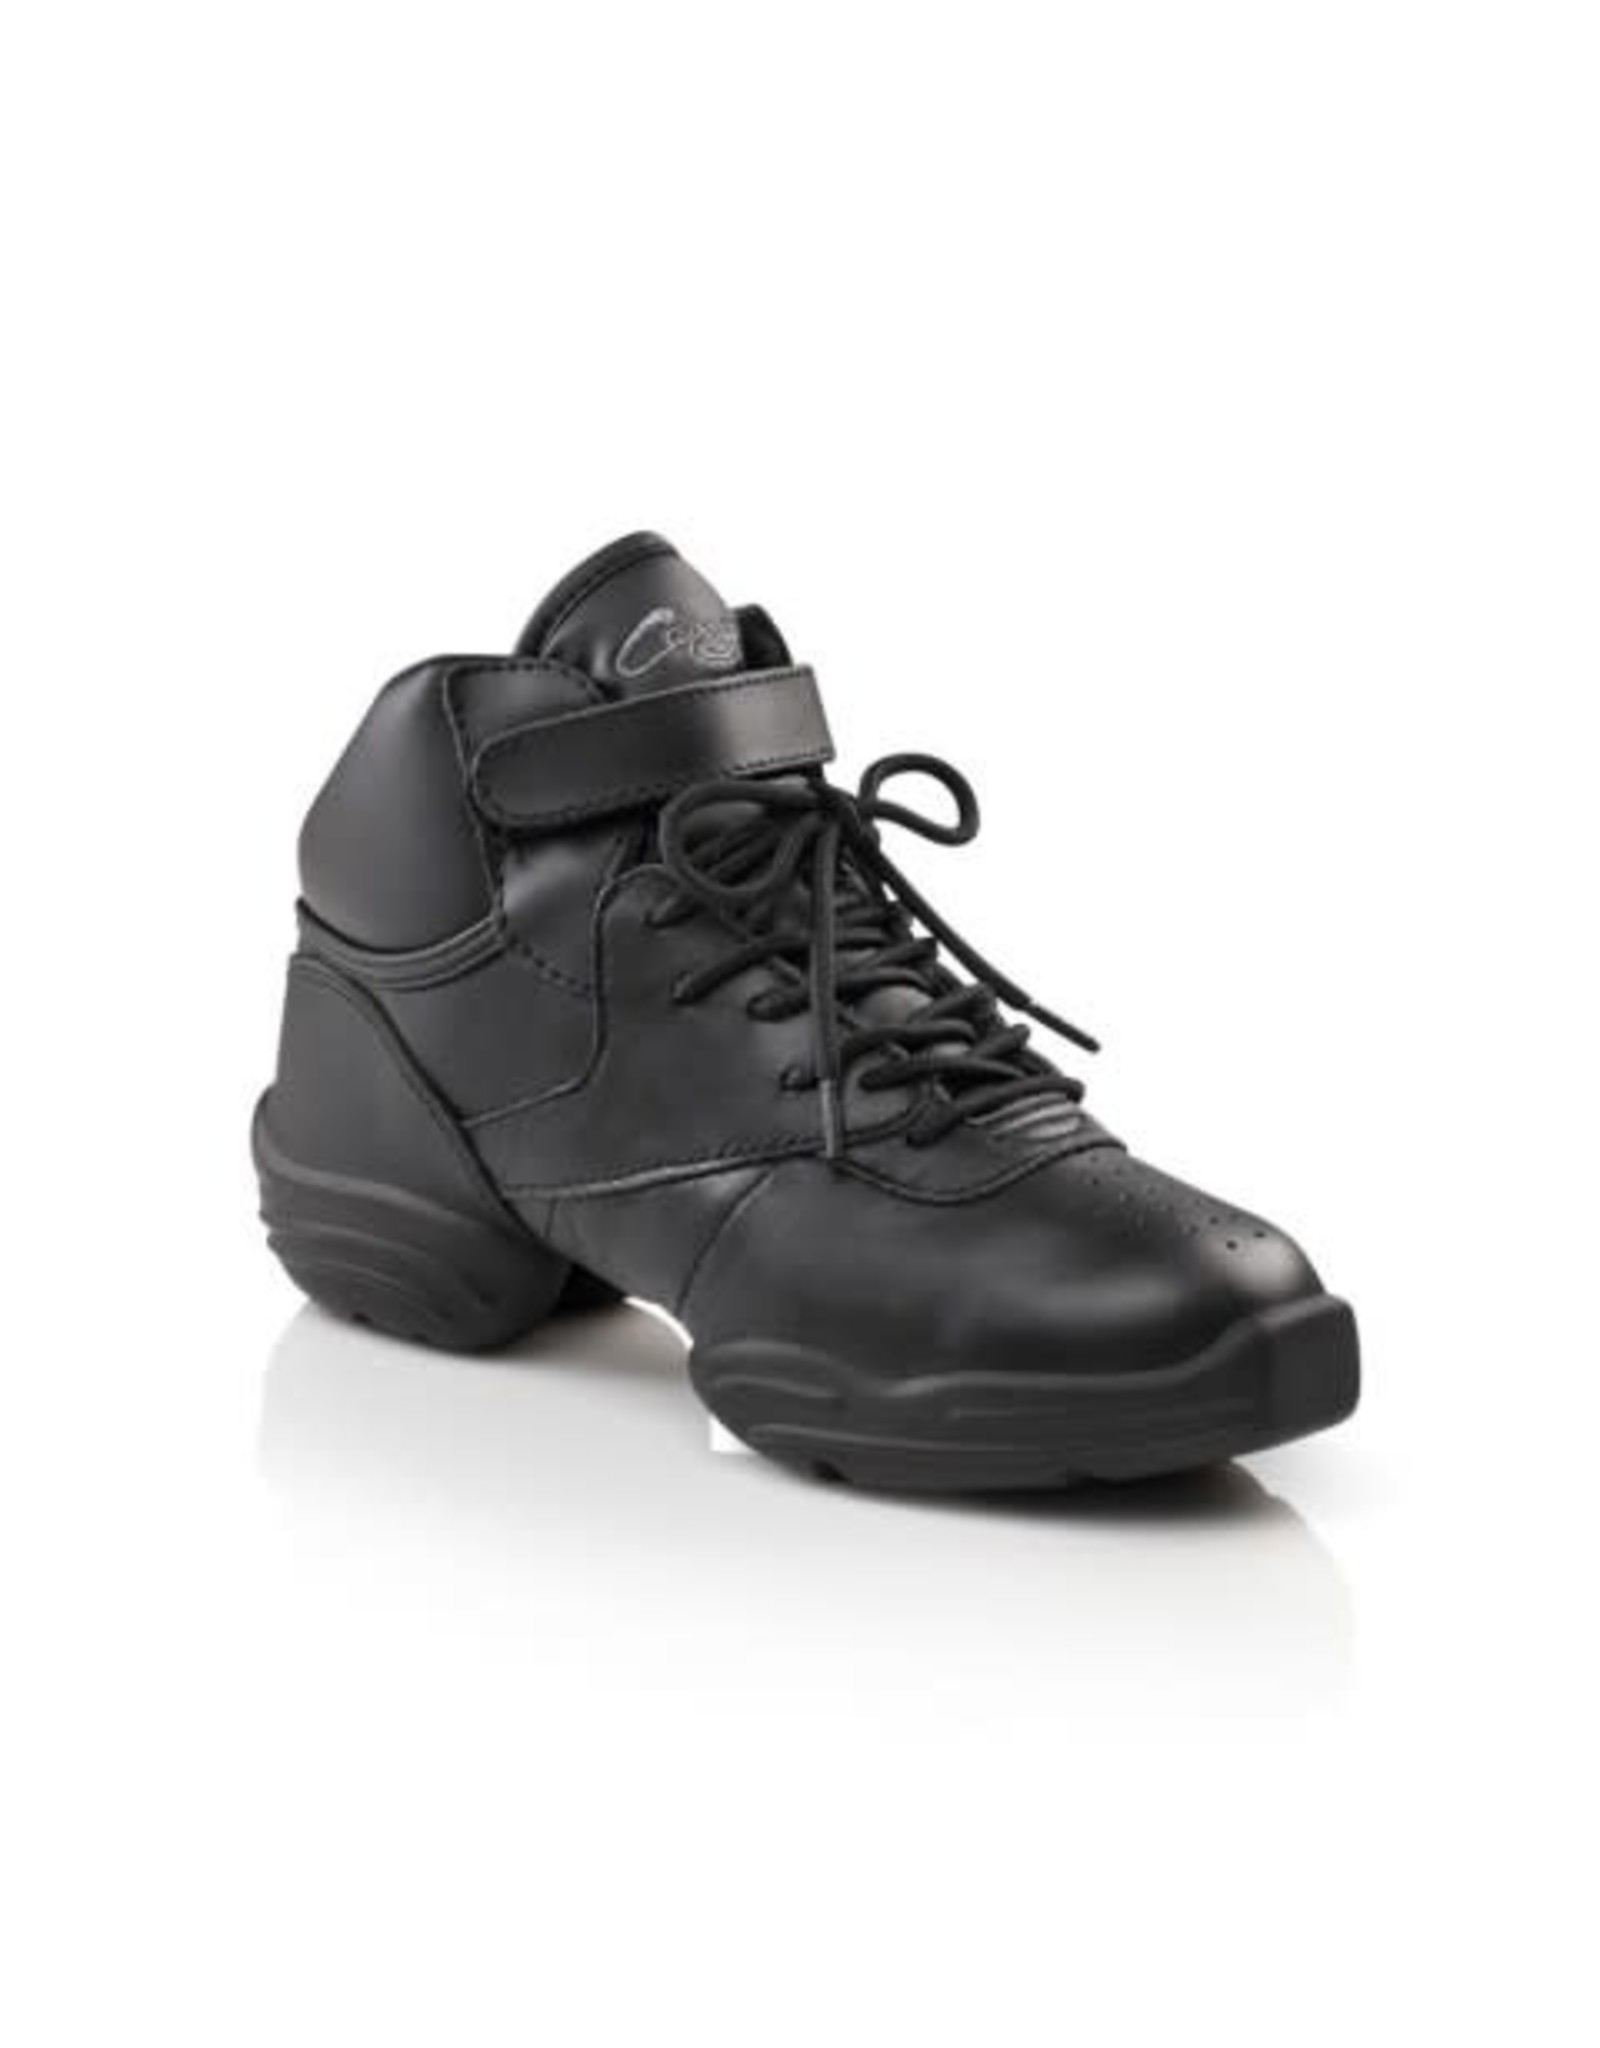 Capezio DS01 High top leather